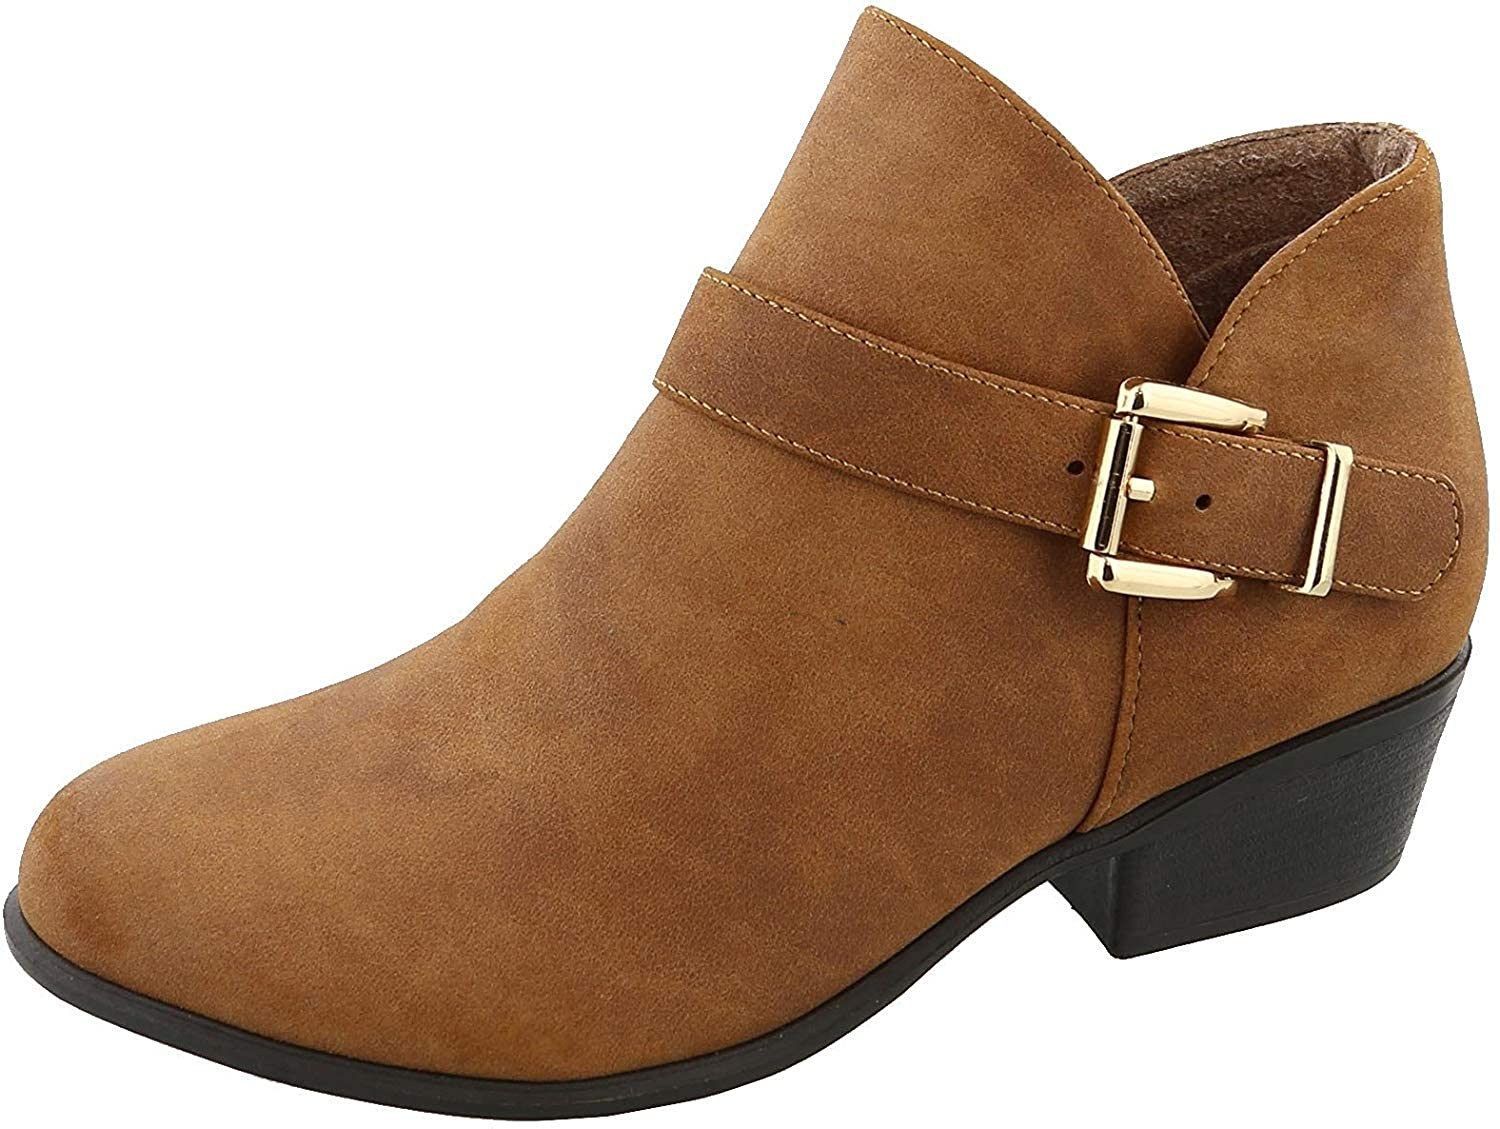 Top Moda Women's Buckle Accent Heeled Ankle Bootie